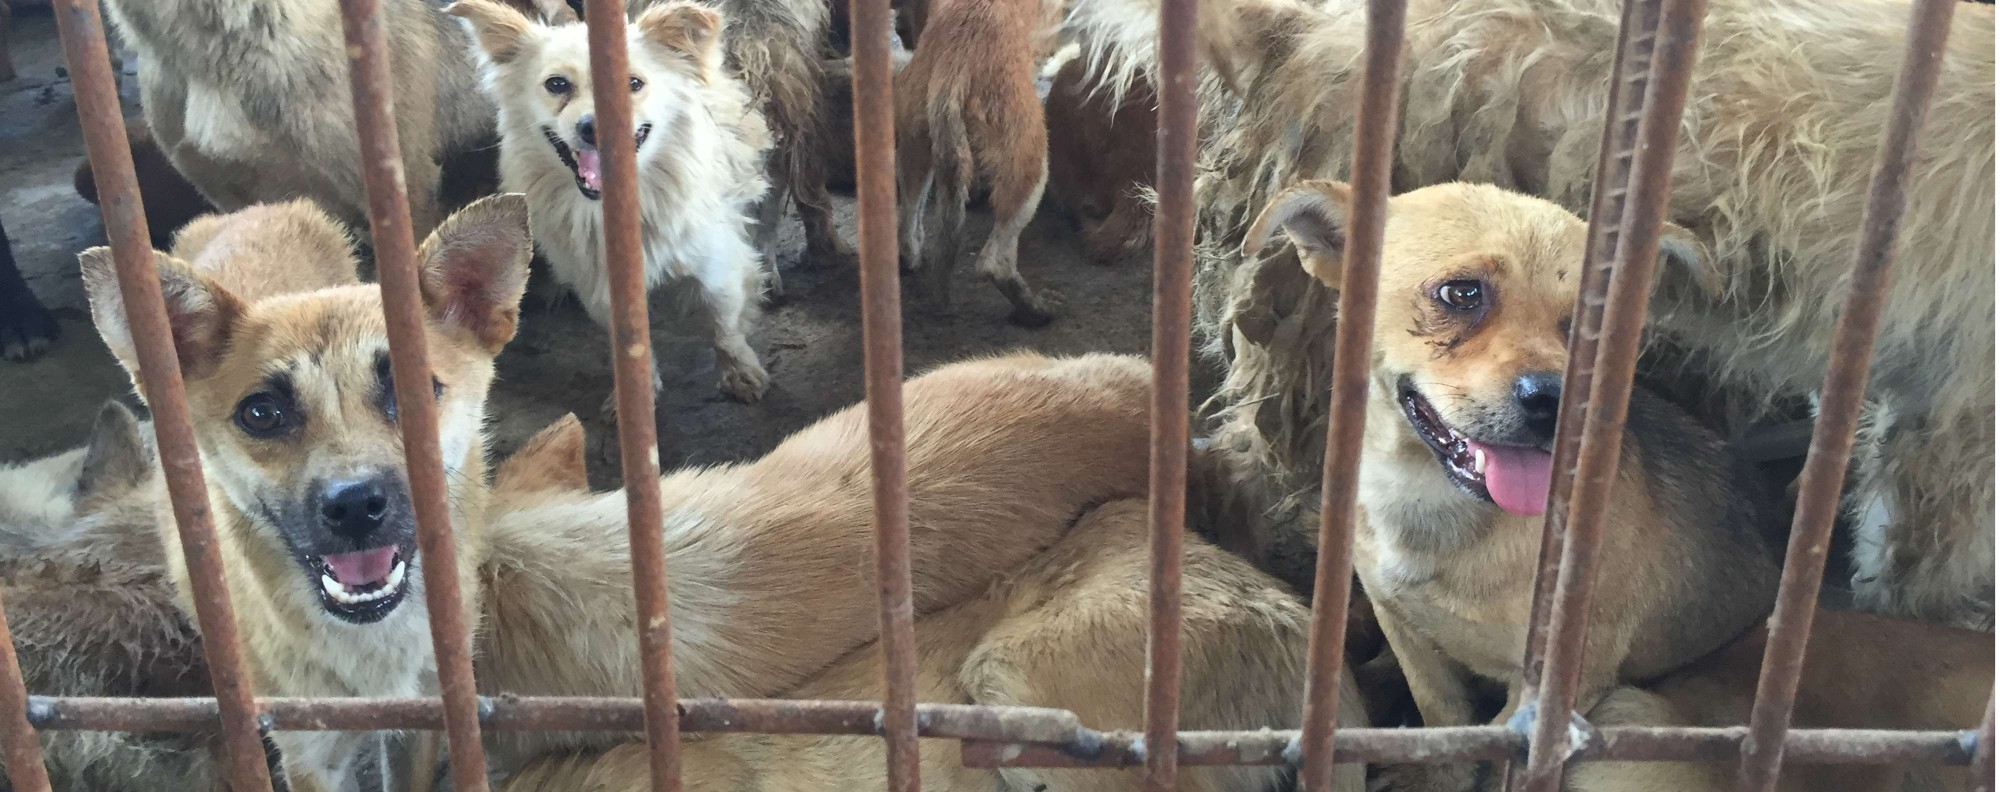 Dogs at a slaughterhouse in Yulin.